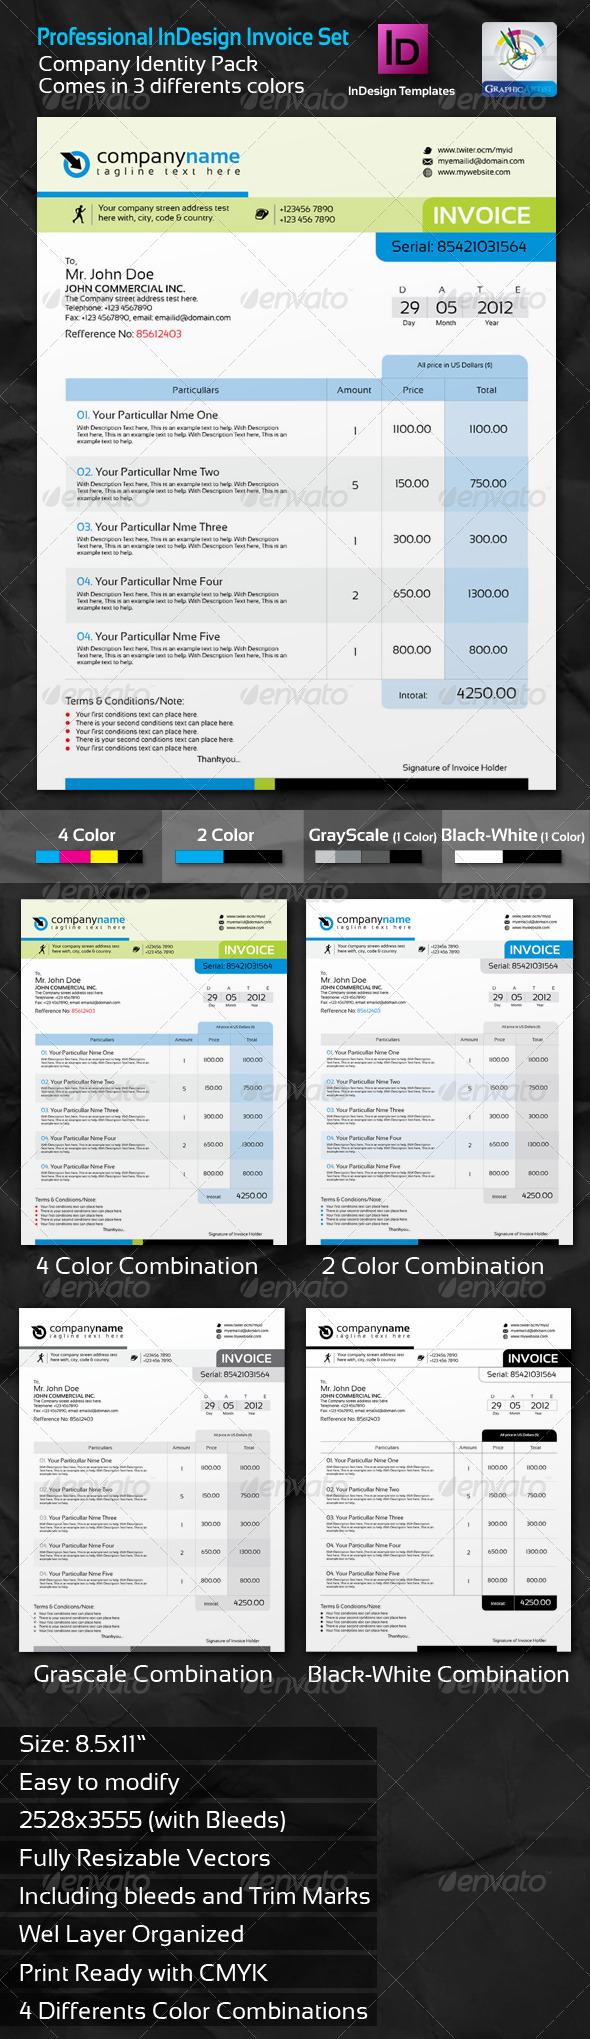 Professional invoice indesign template set by for T shirt printing business proposal letter